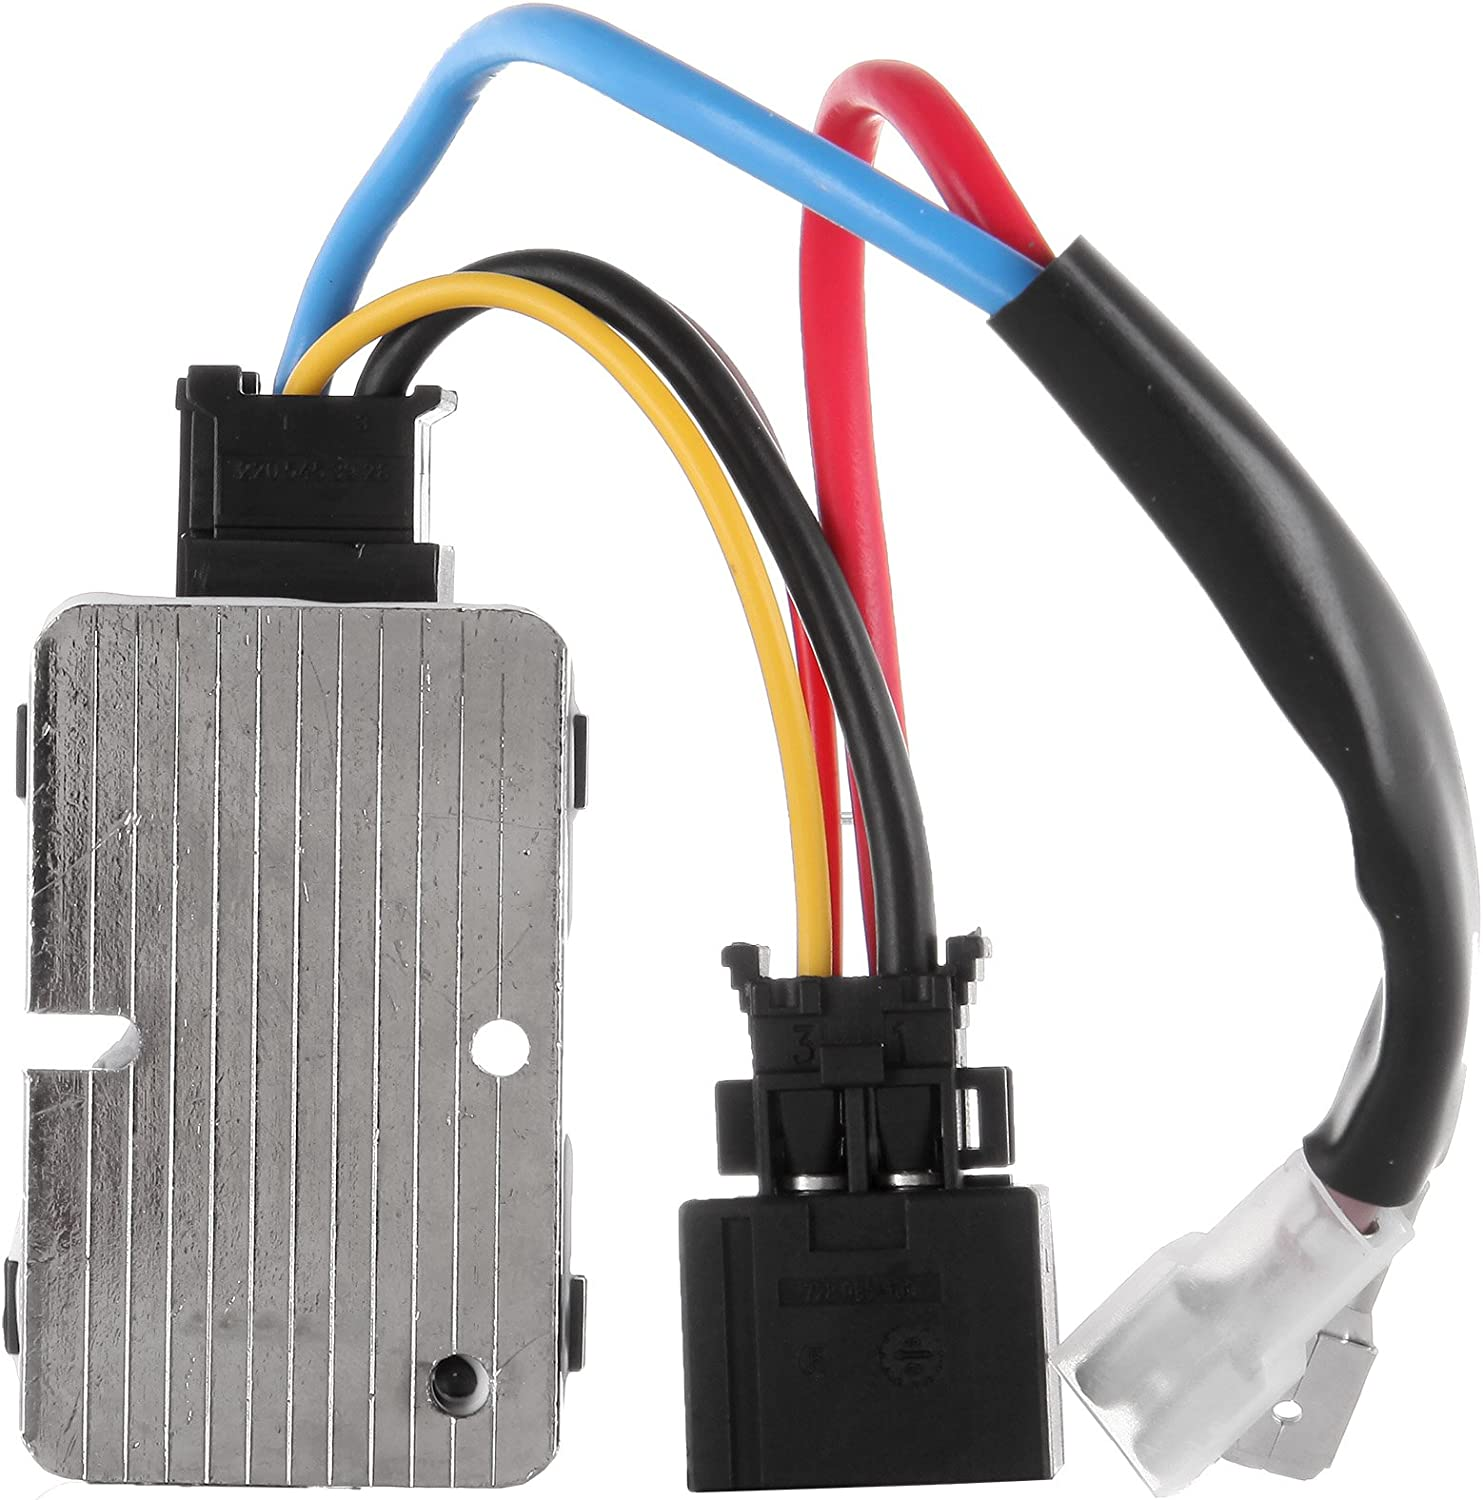 S-Class 94-99 Blower Regulator A//C and Heater Blower Motor Resistor compatible with Mercedes Benz 300SD 92-93